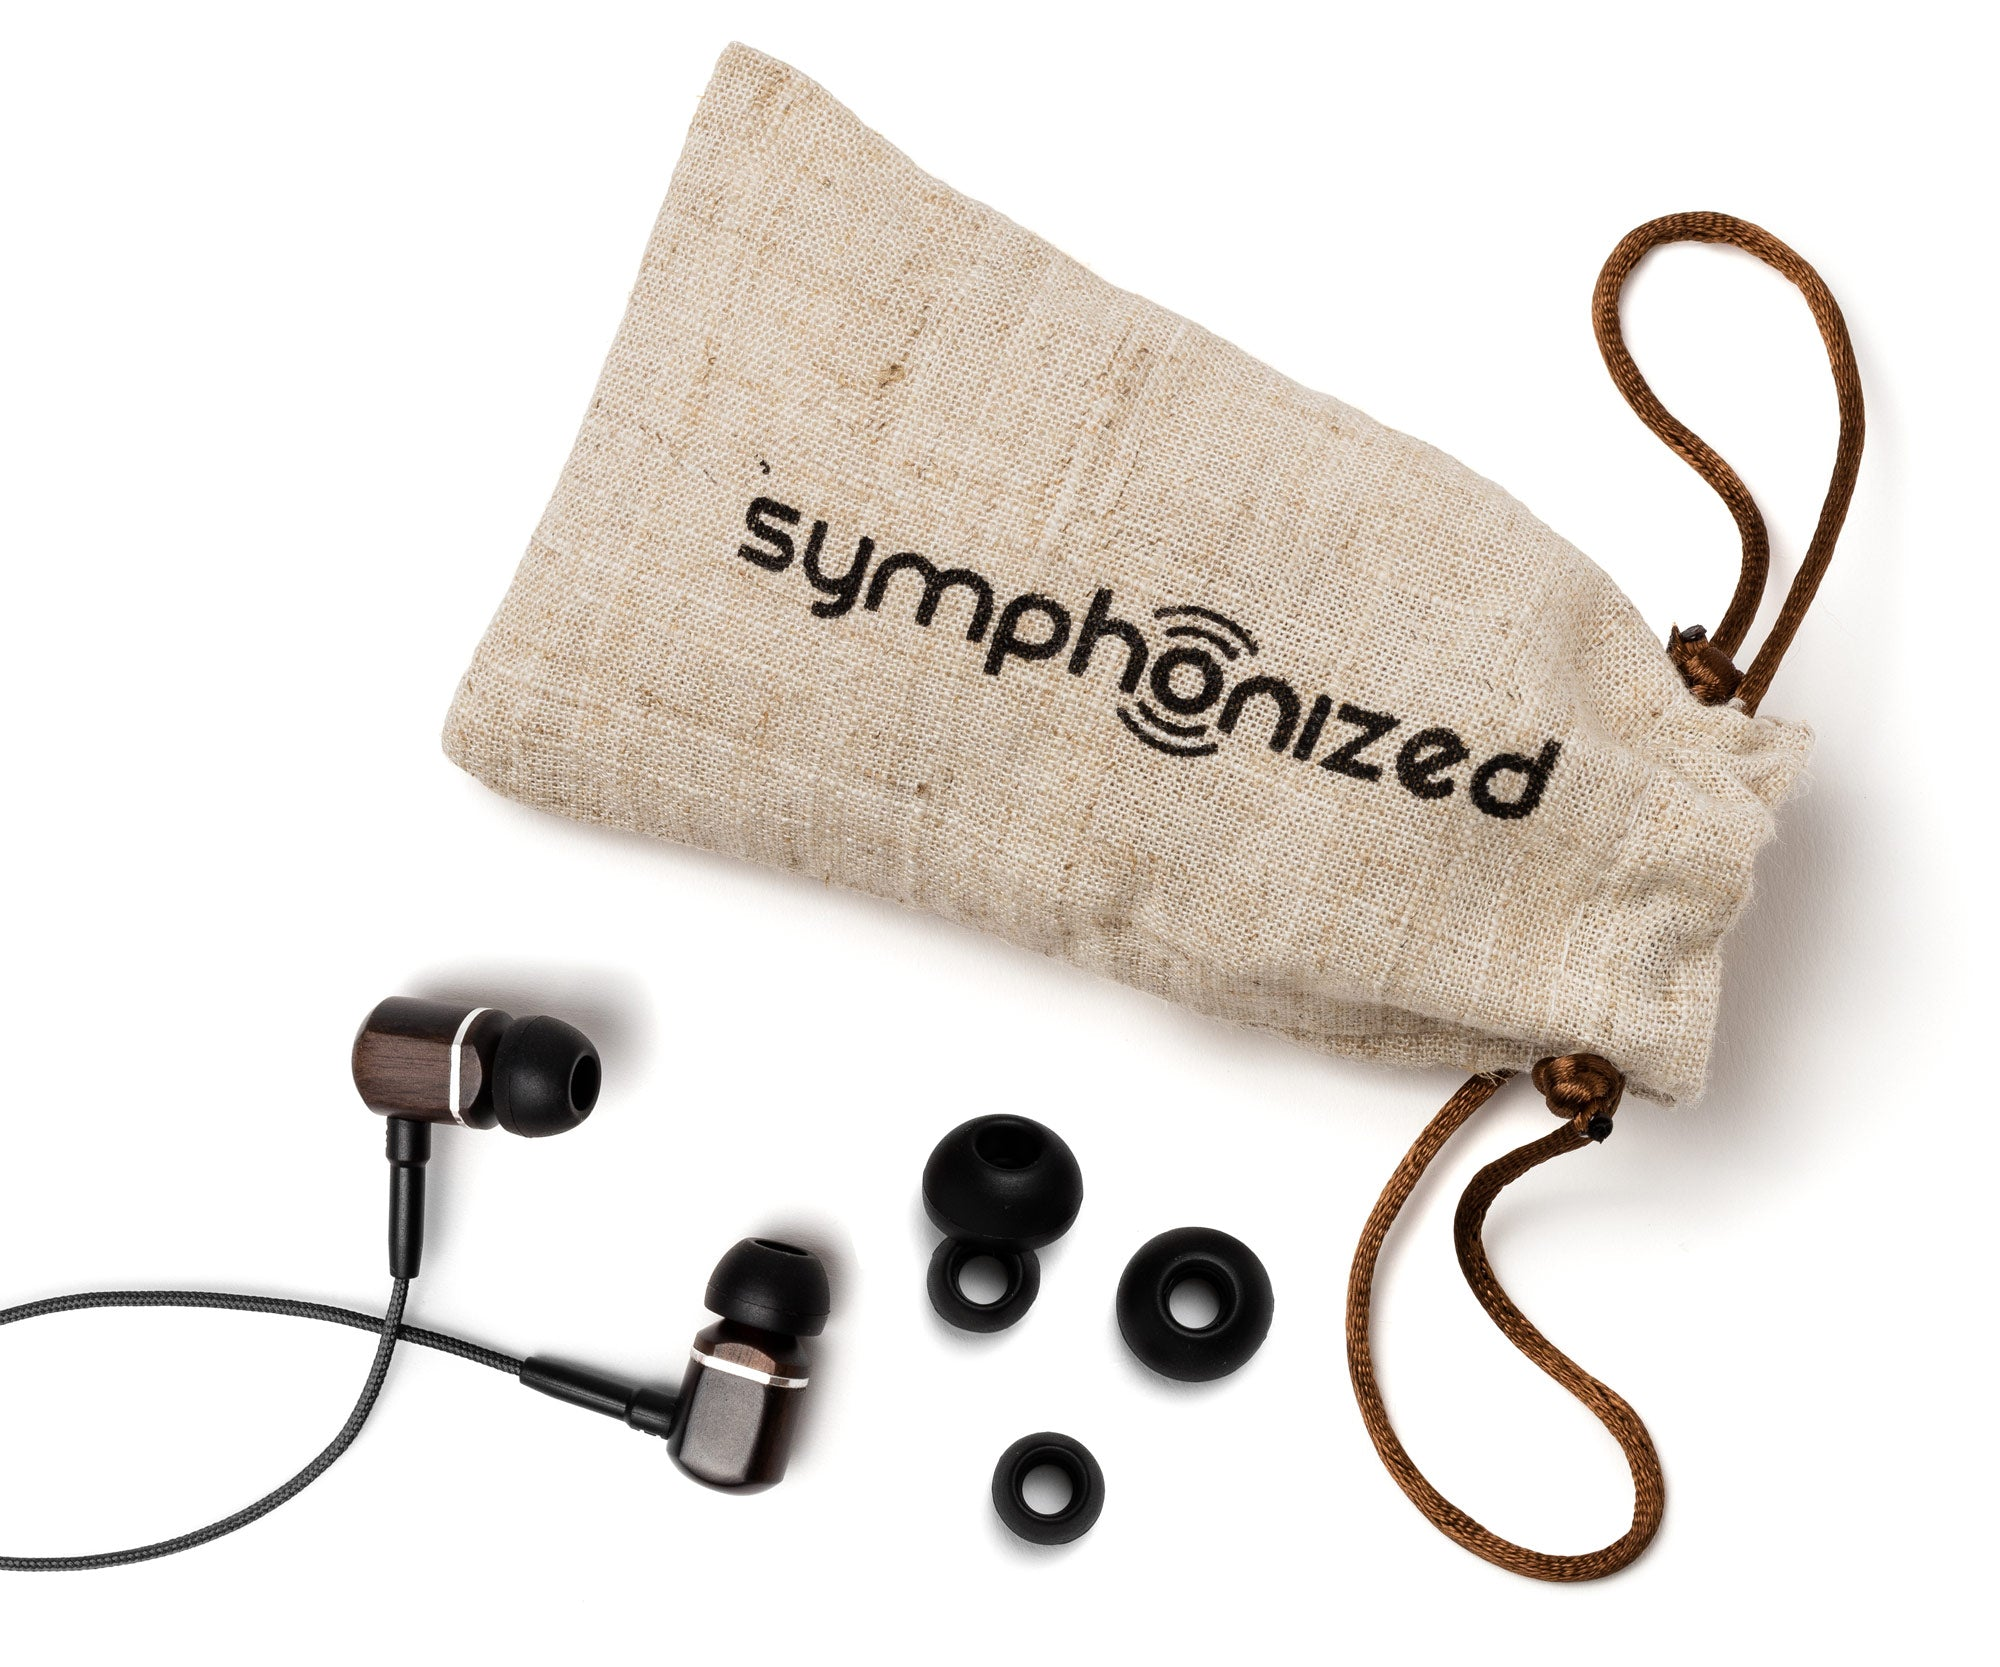 MTRX In-Ear Wood Headphones - Black